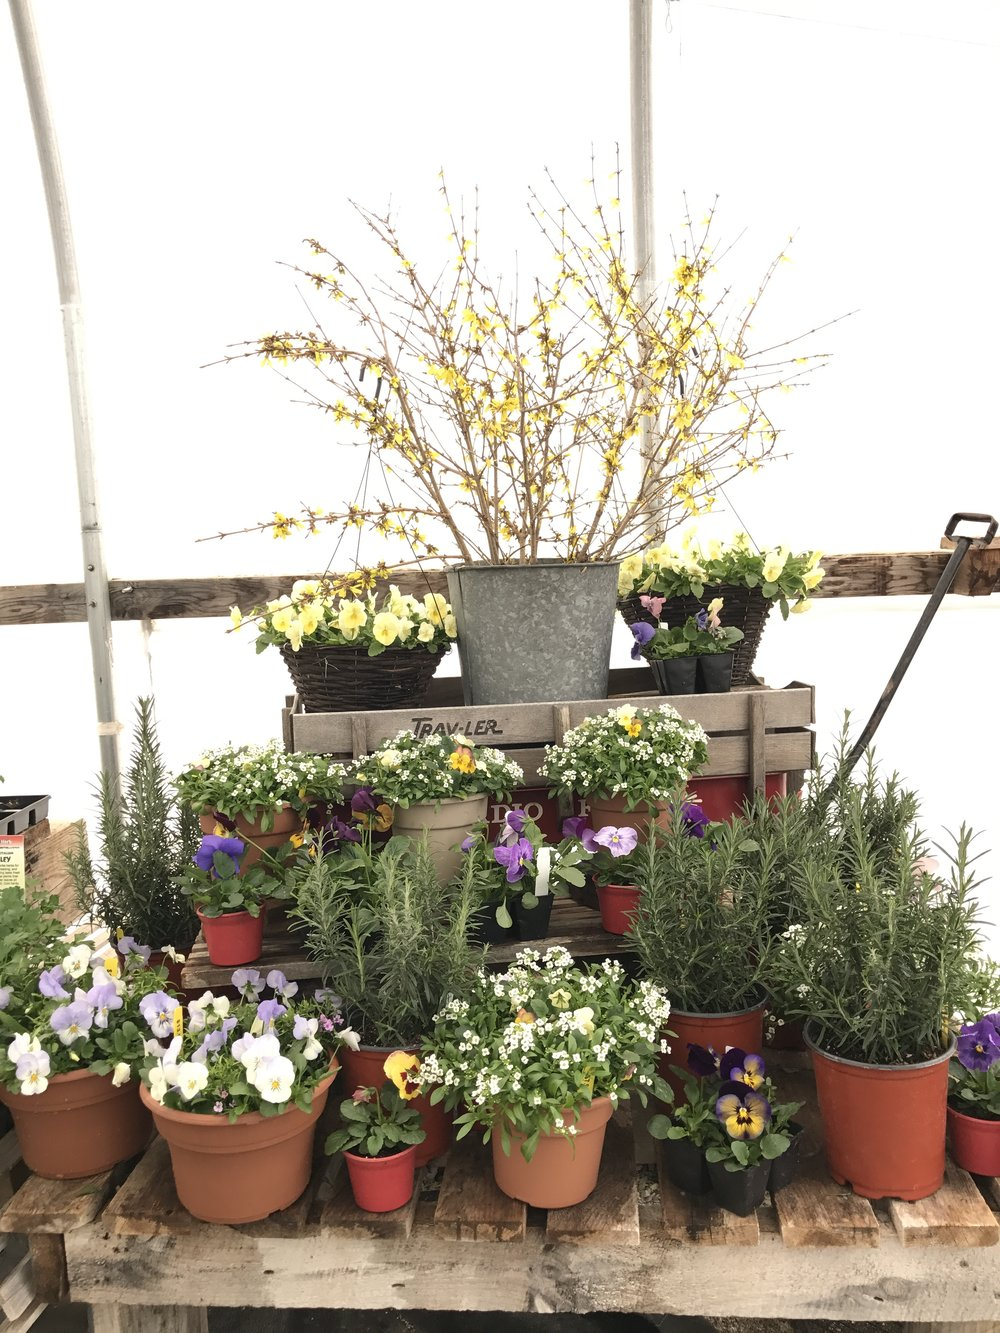 Spring time displays with violas, alyssum, pansies, rosemary, and forced forsythia branches. Nice job, Lily!